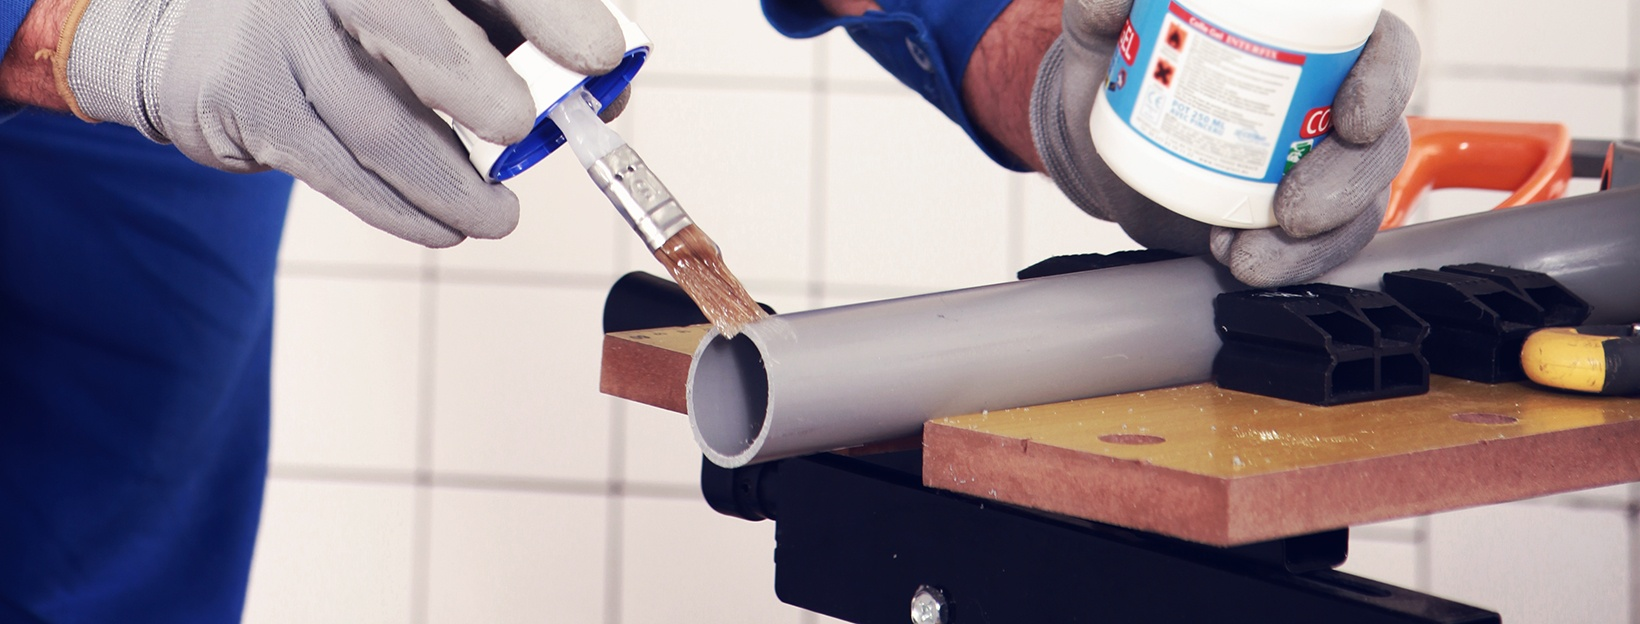 How to Install CPVC Pipe Using Solvent Cement